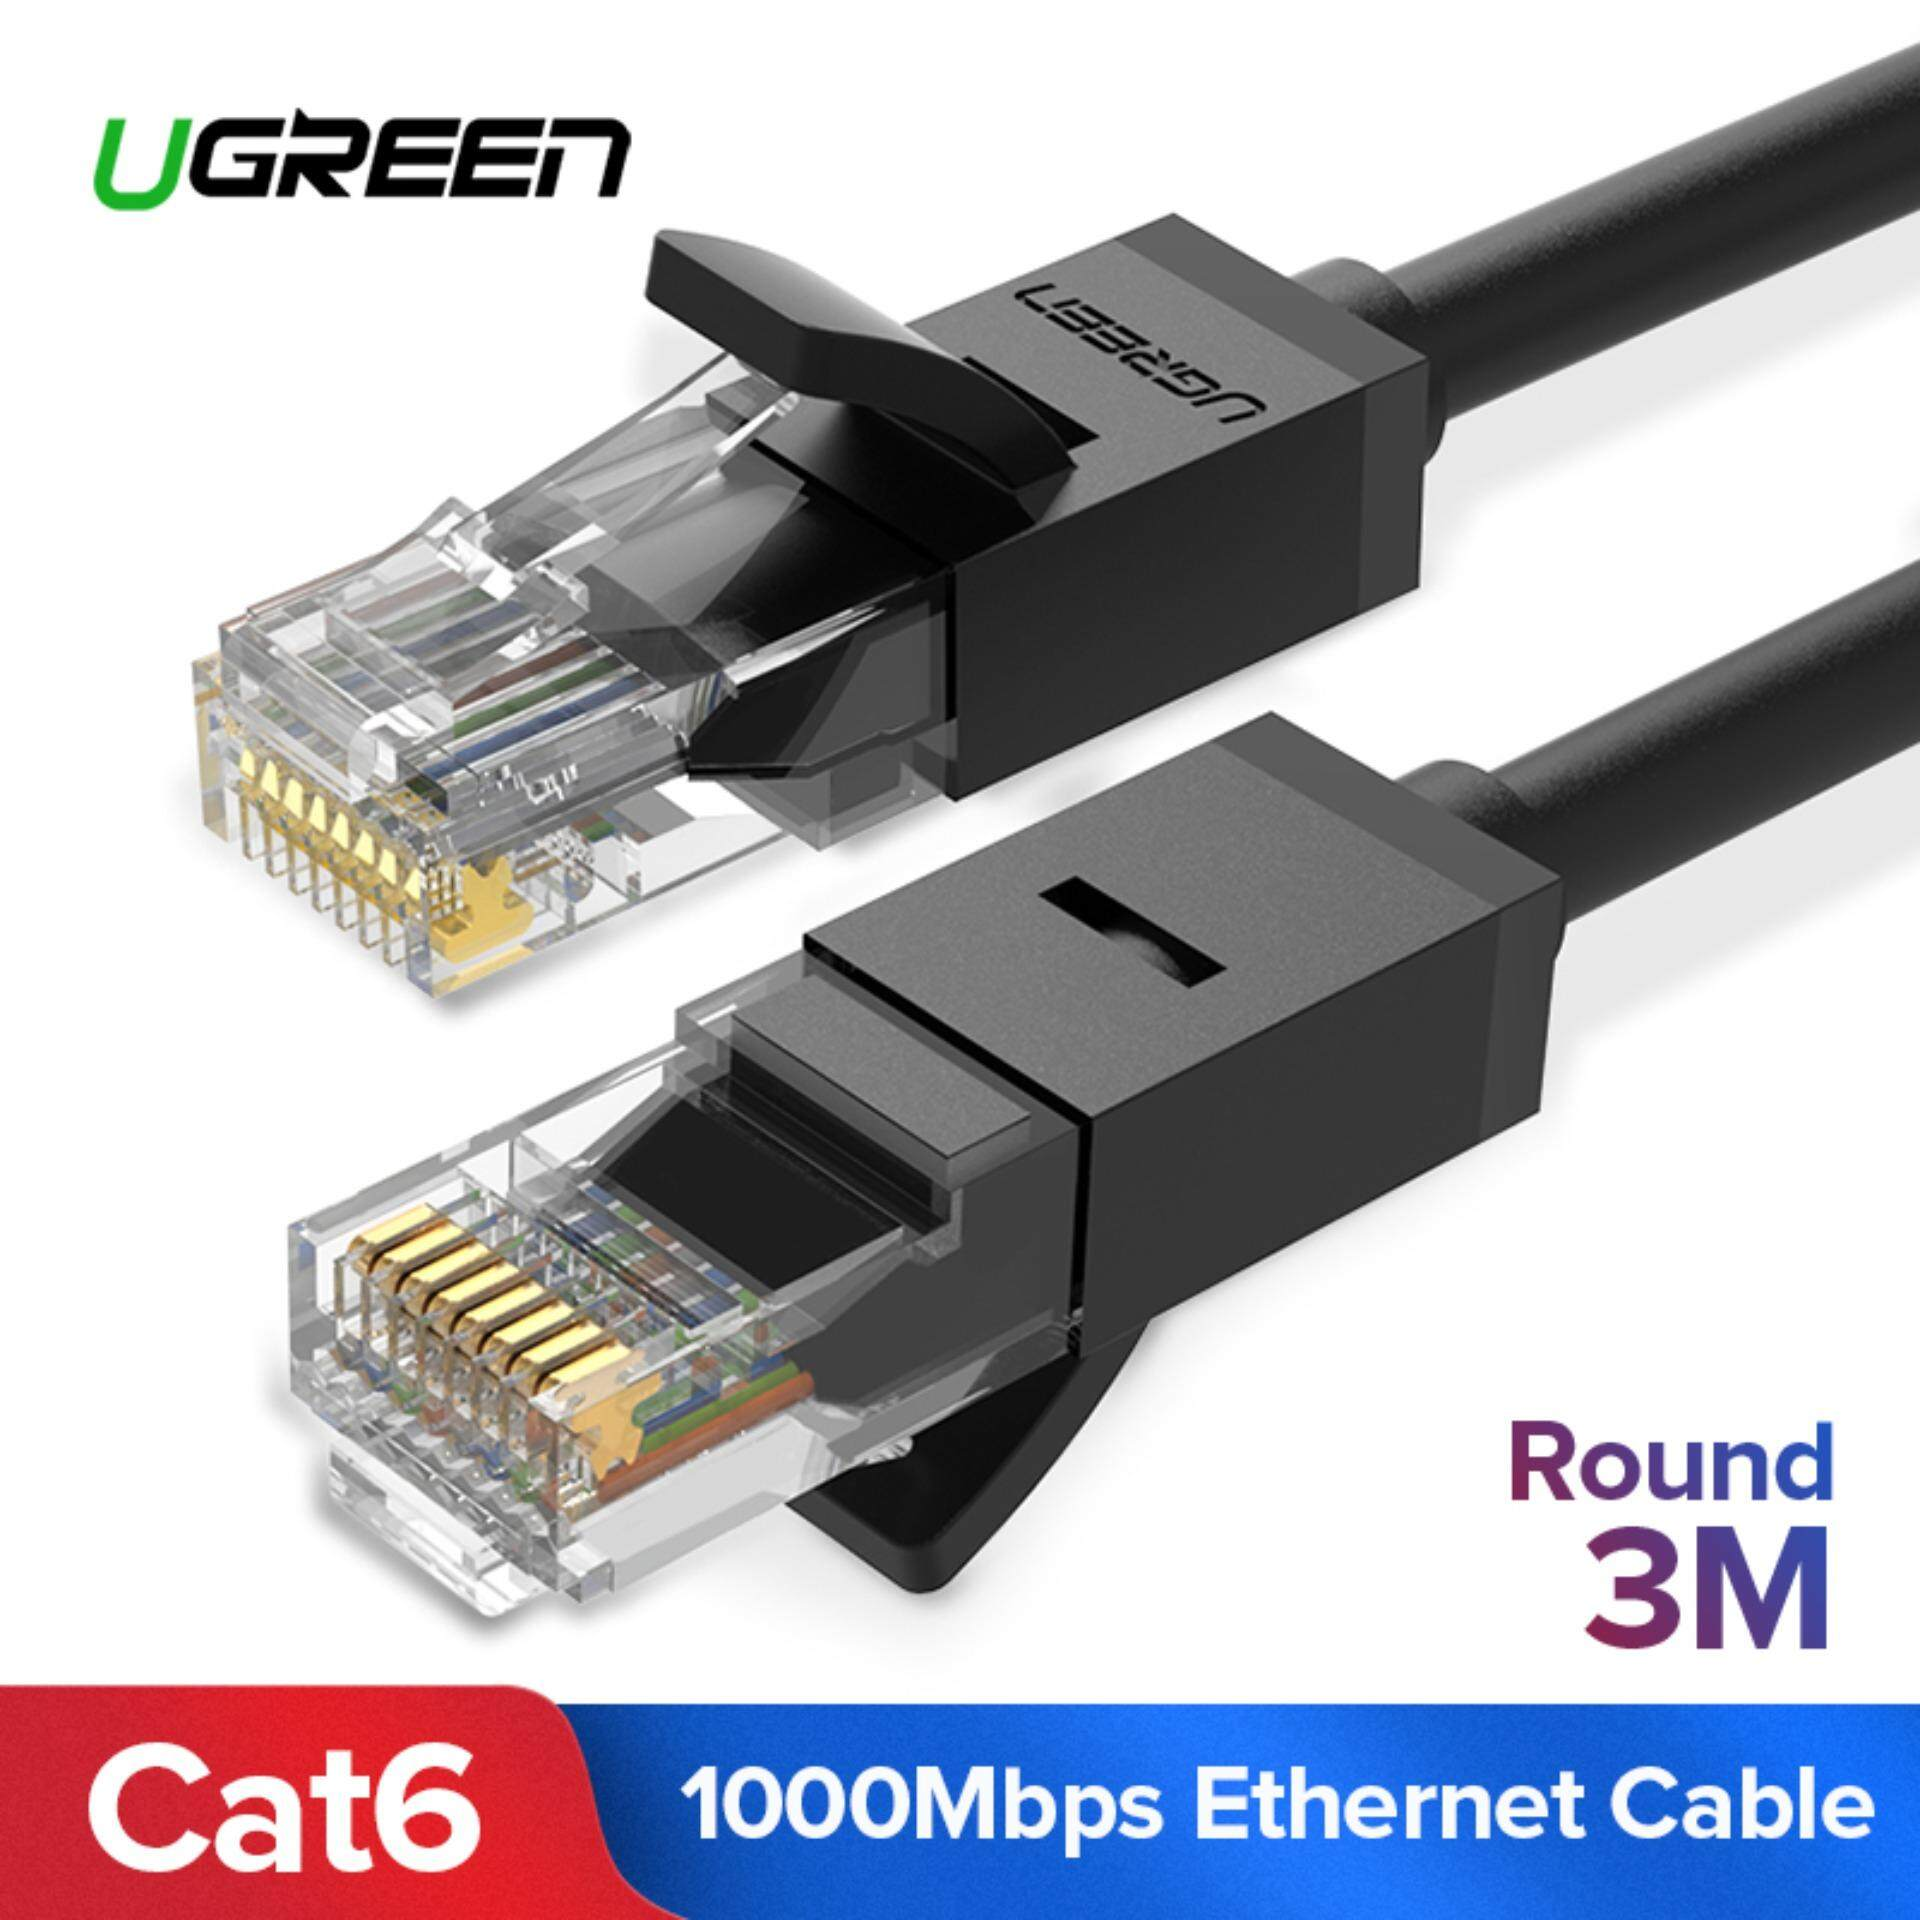 Ugreen 3 Meter Round Cable Cat6 Ethernet Patch Cable Gigabit Rj45 Network Wire Lan Cable Plug Connector For Mac, Computer, Pc, Router, Modem, Printer, Xbox, Ps4, Ps3, Psp (black) - Intl By Ugreen Flagship Store.